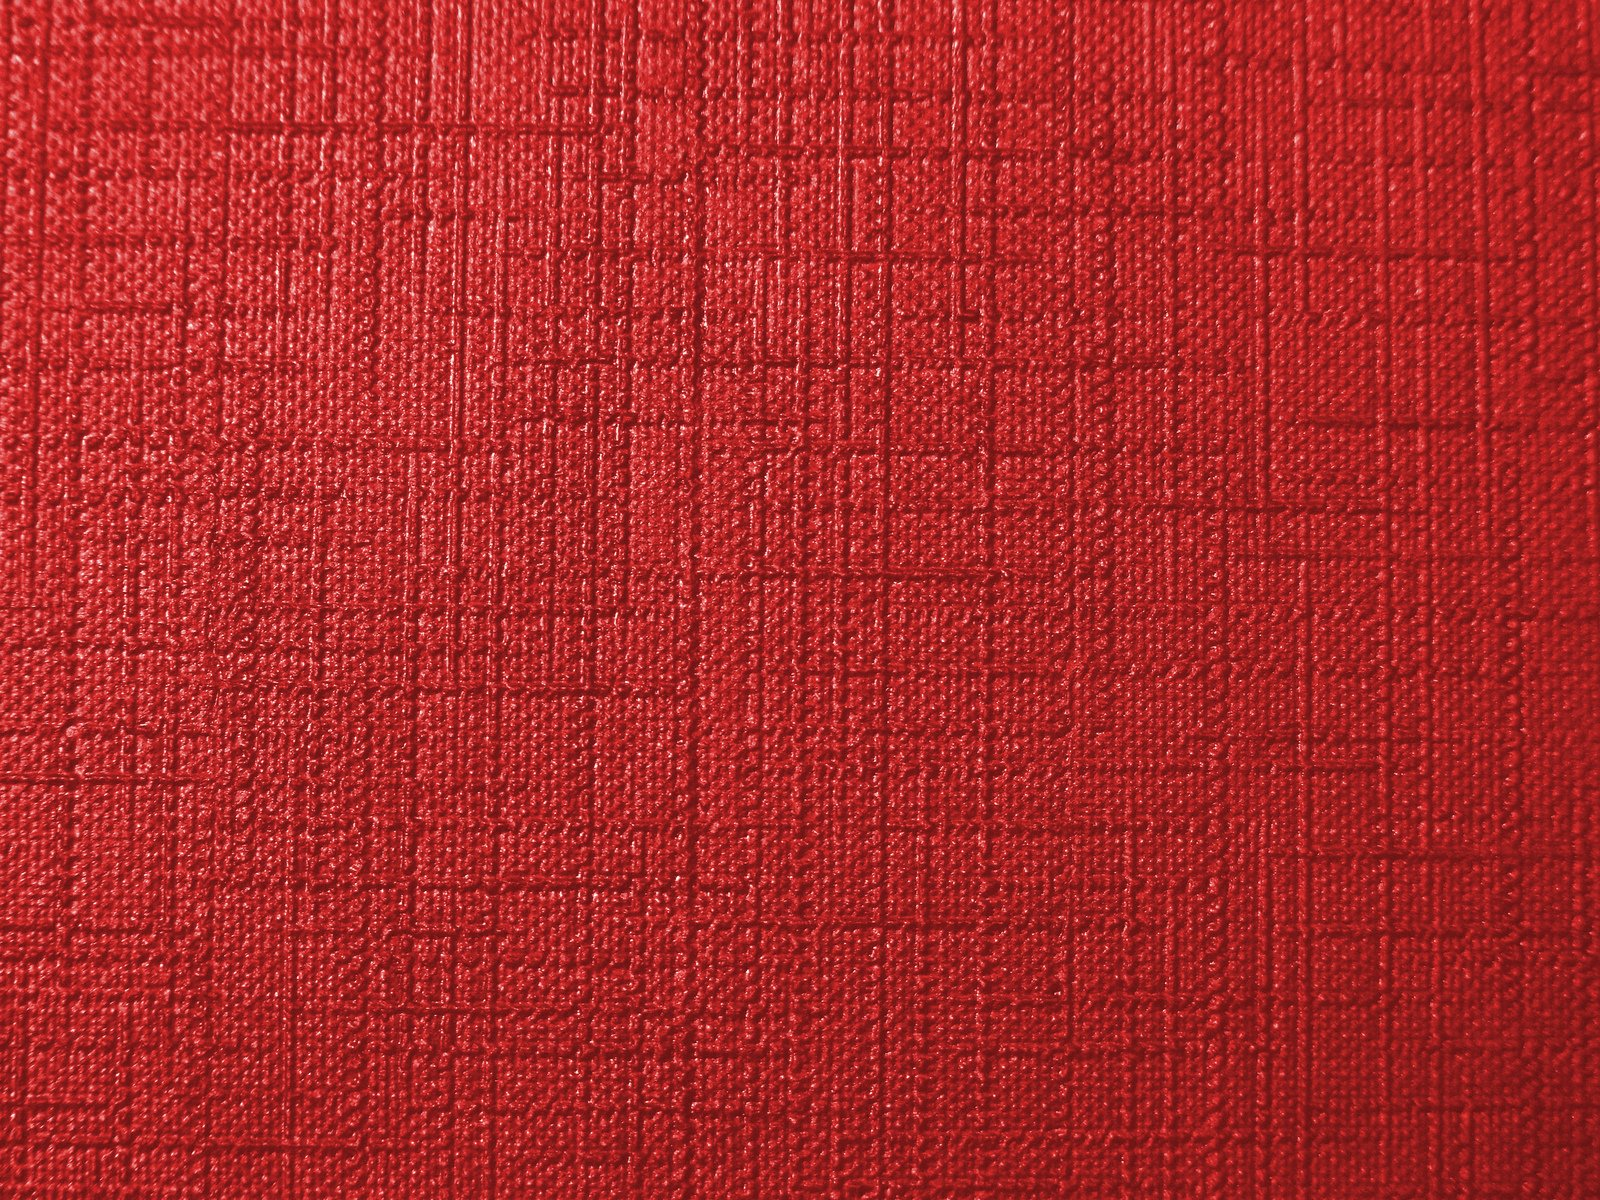 Free Red Texture Stock Photo